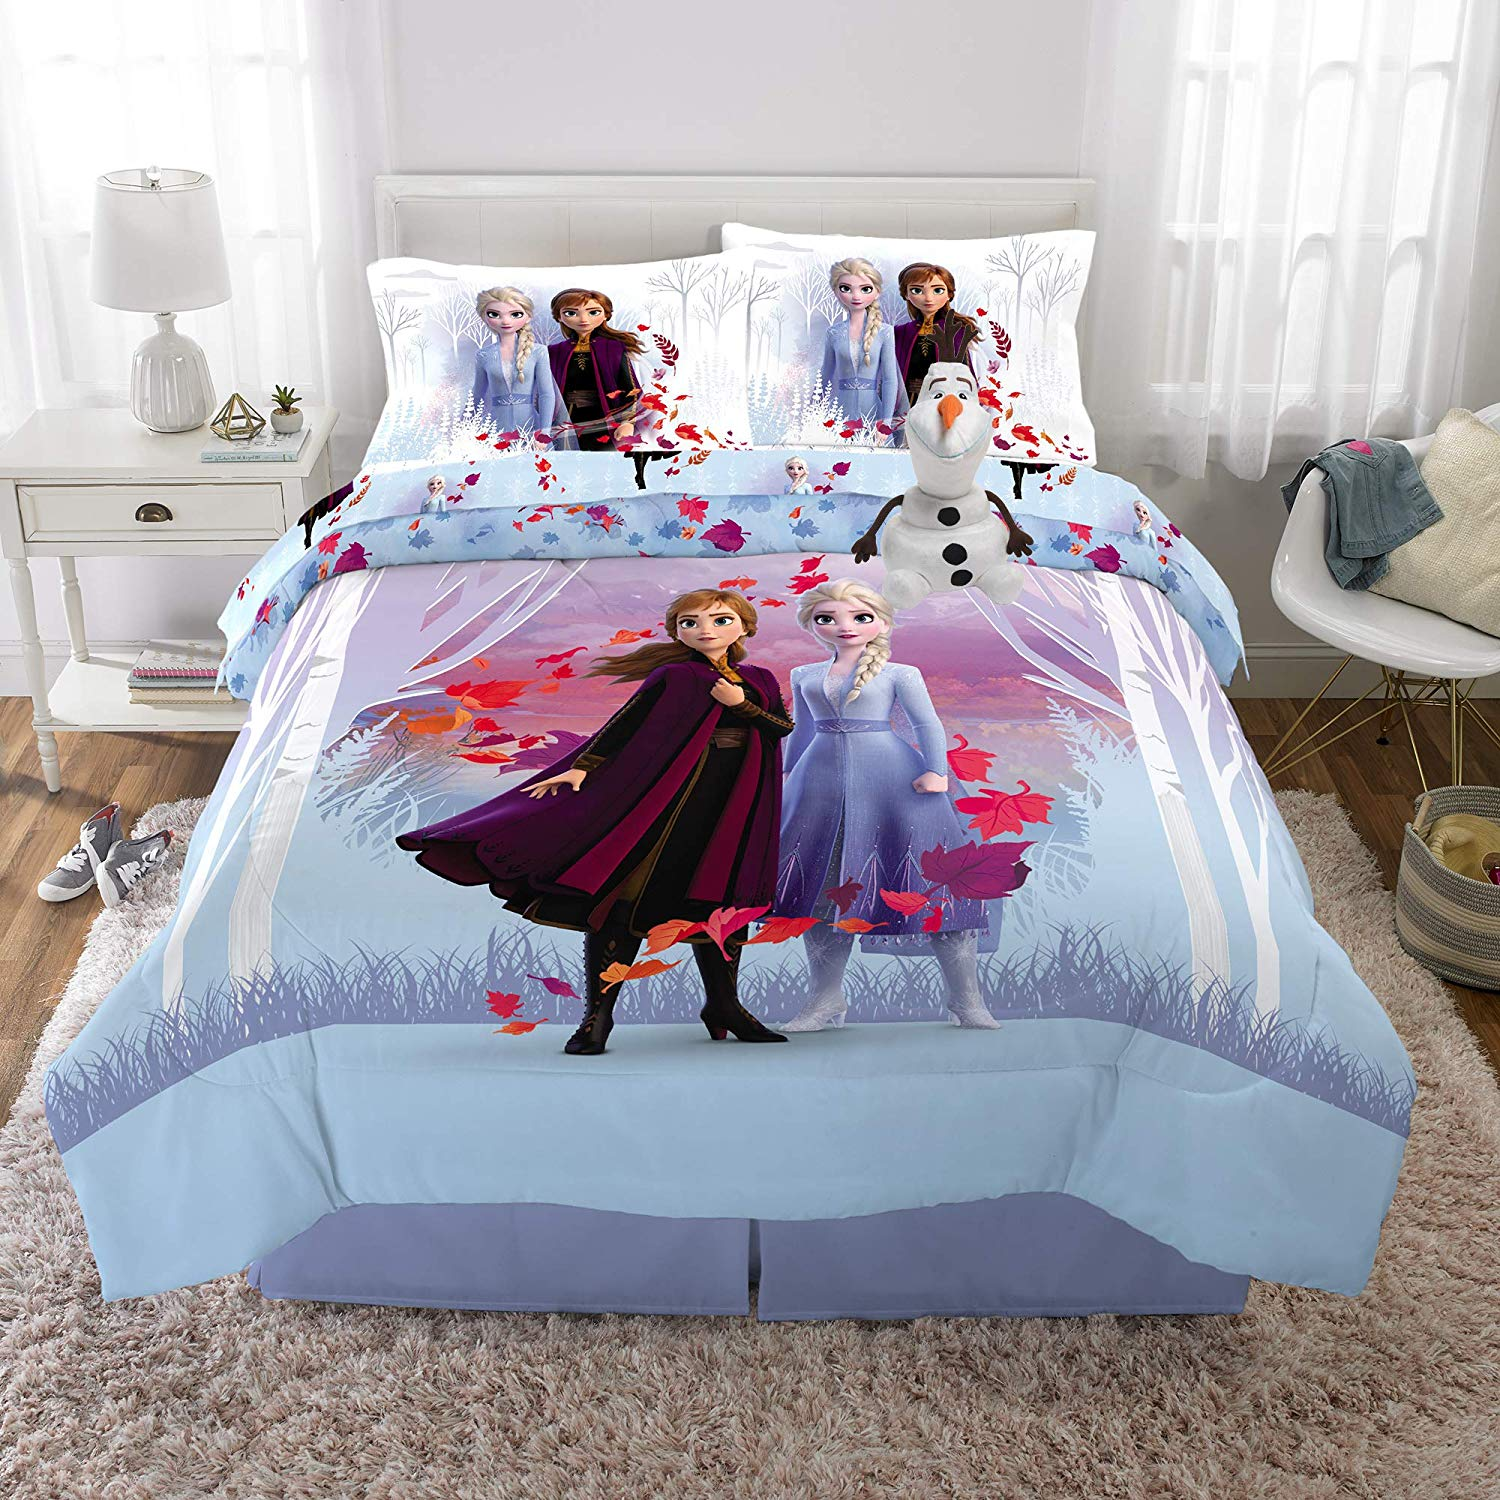 Super Soft Comforter with Sheets and Plush Cuddle Pillow Set - frozen gift ideas